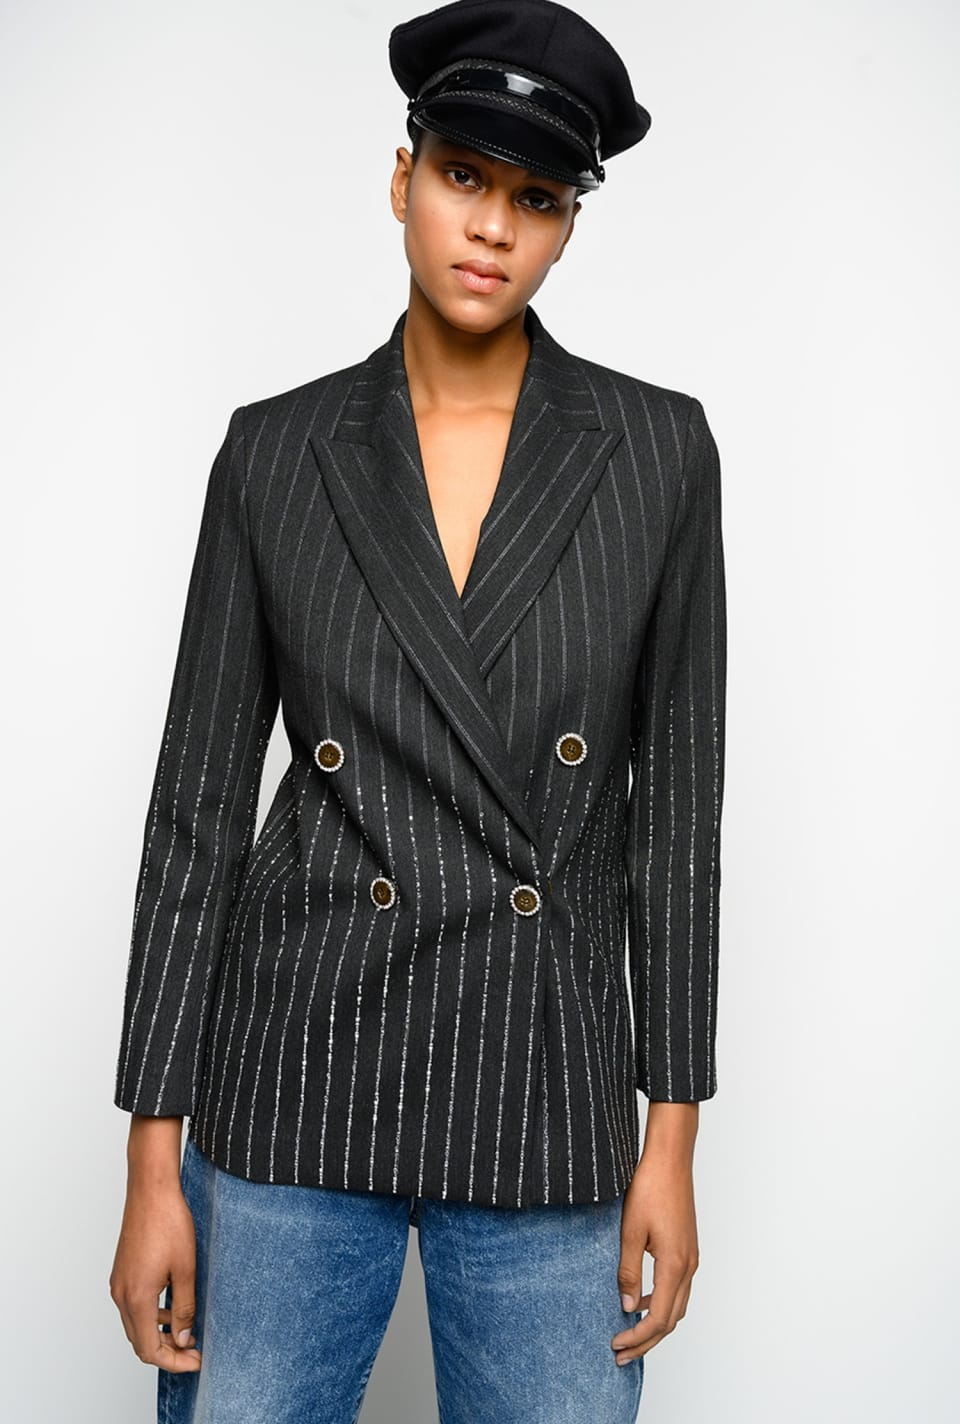 Lurex pinstriped blazer with rhinestones - Pinko